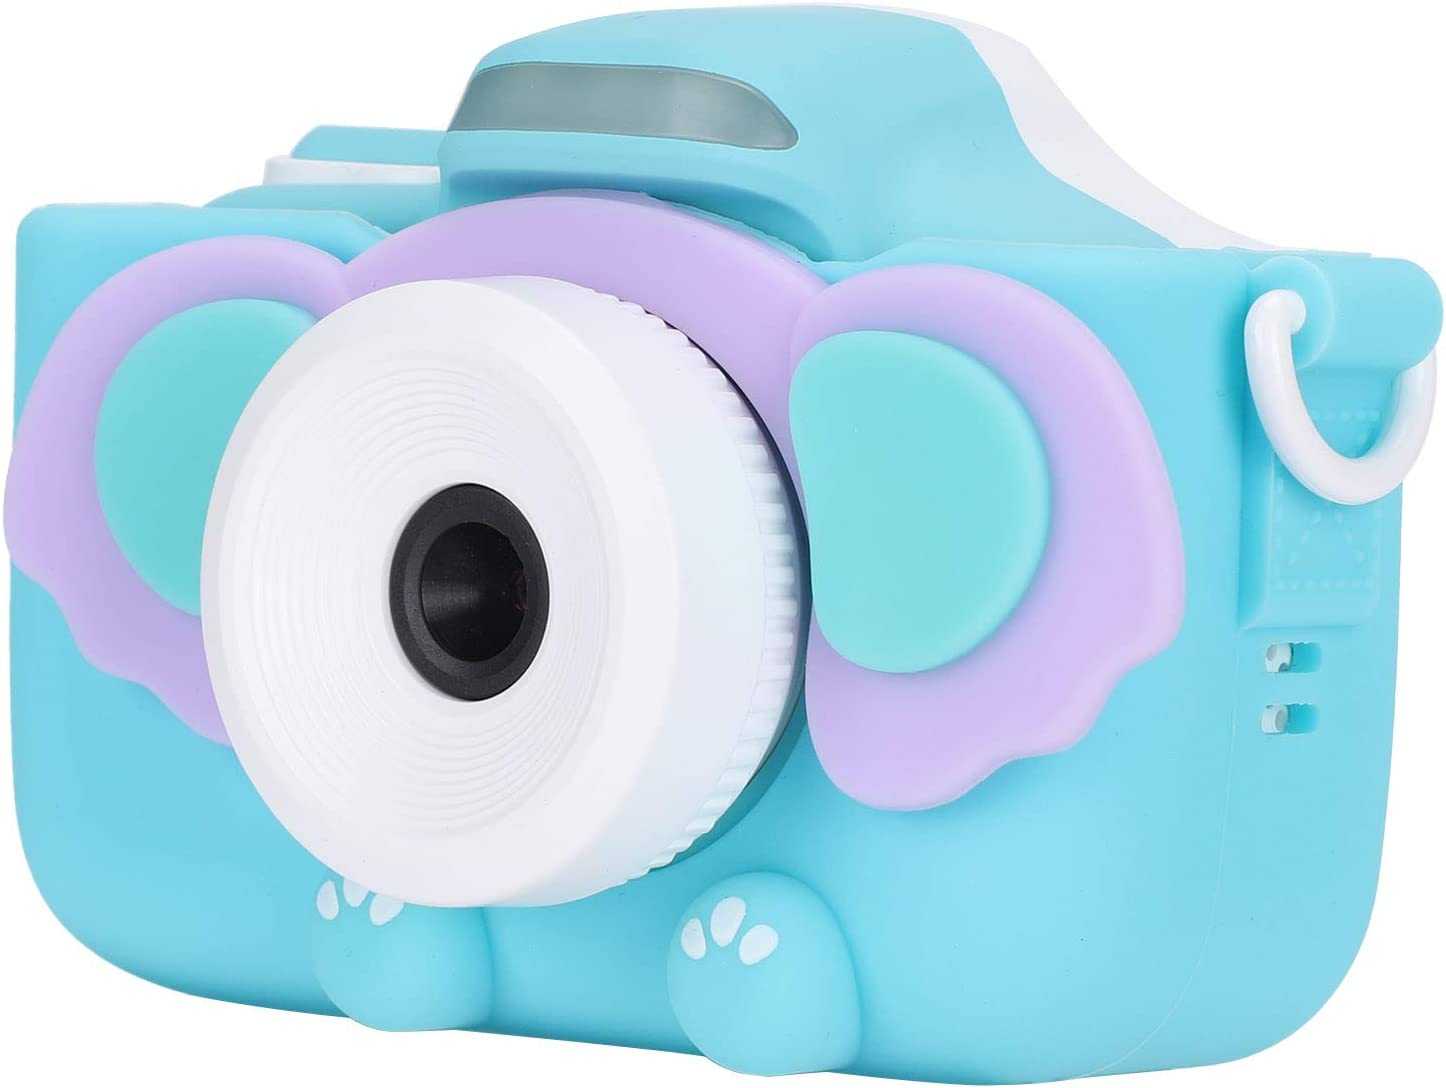 Free Shipping New Kids Camera 3.0 Inch 48MP Photo Memphis Mall for Multifunction Small